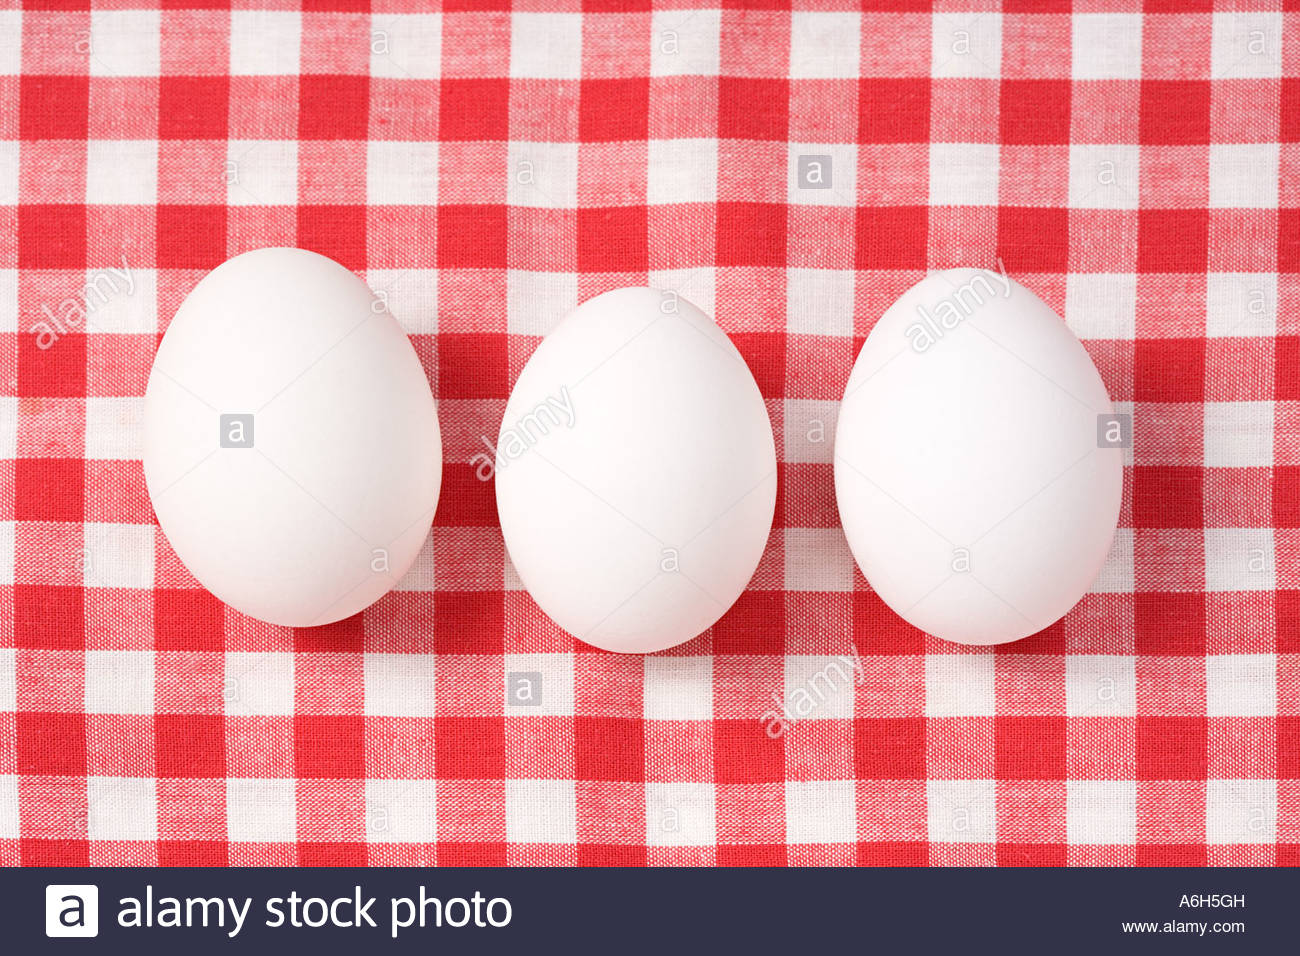 Eggs on a tablecloth - Stock Image